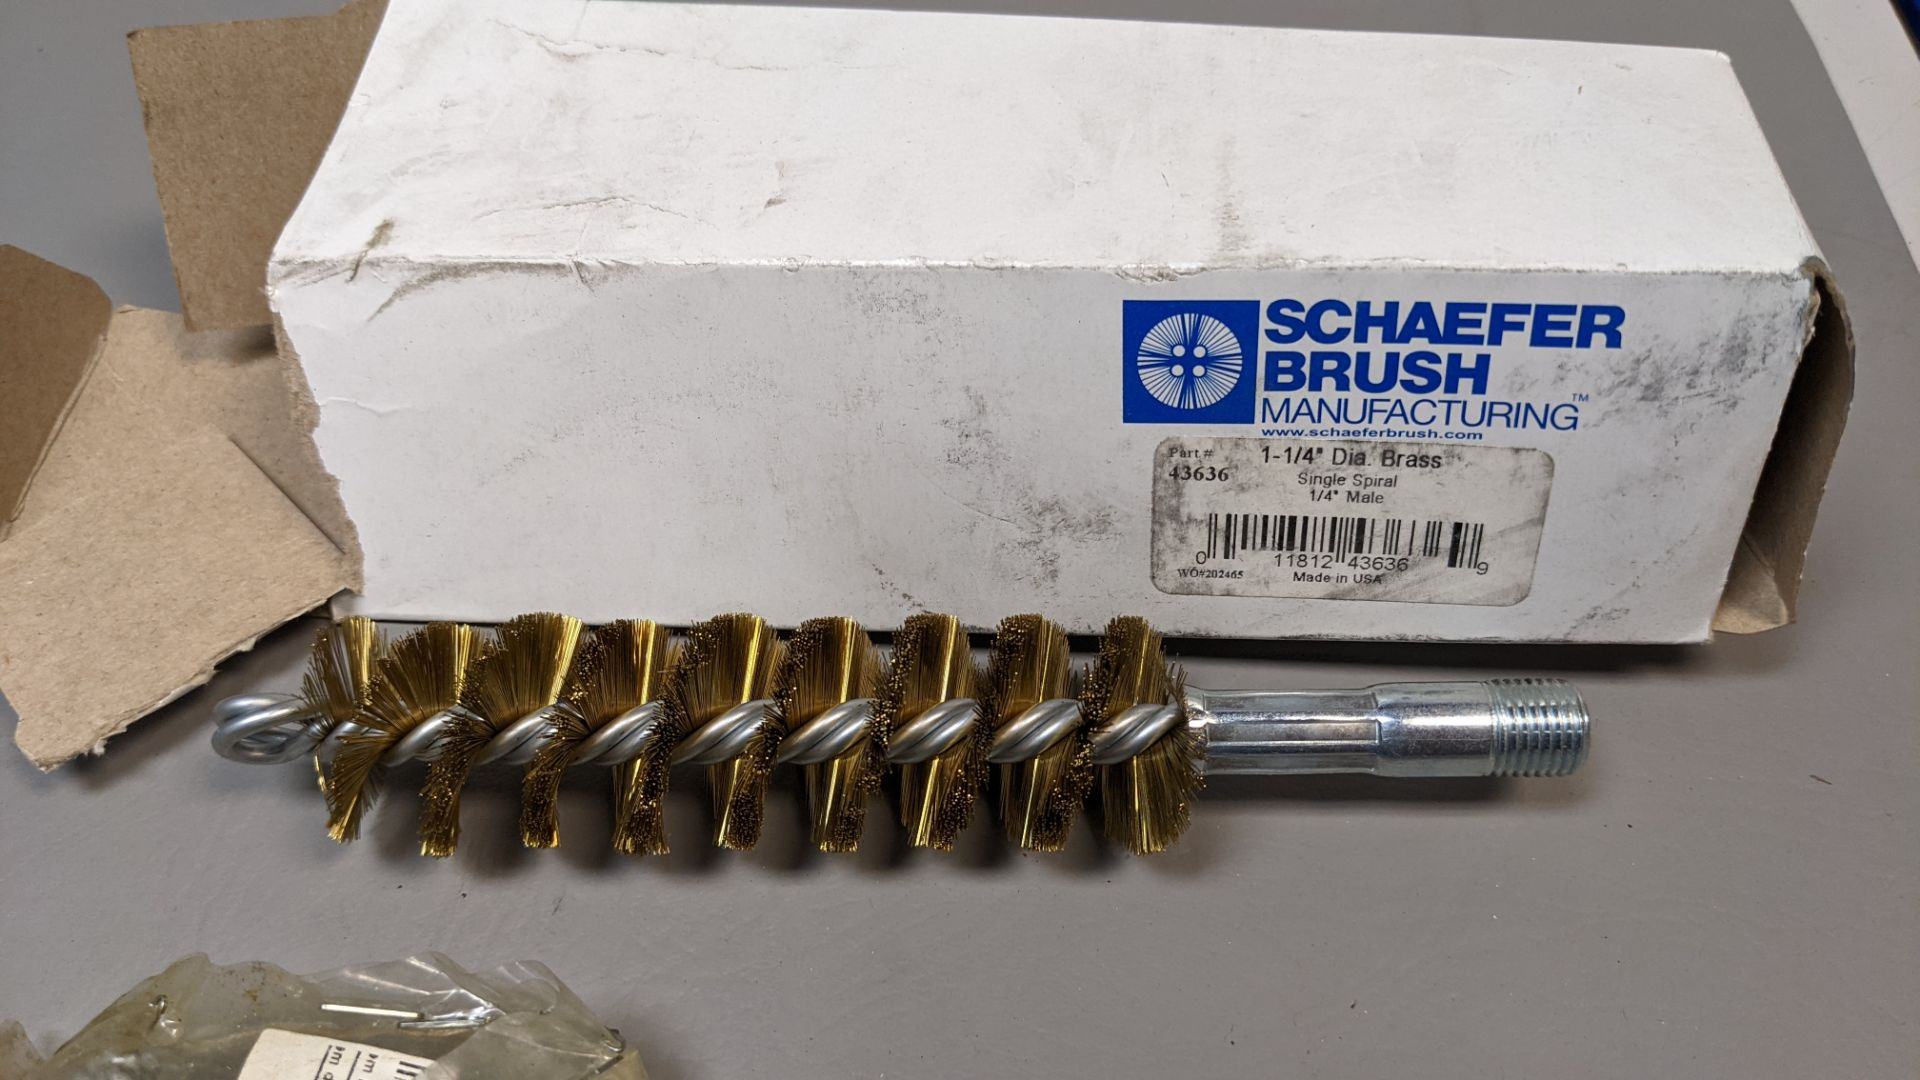 LOT OF NEW PIPE/TUBE METAL BRUSHES - Image 3 of 3